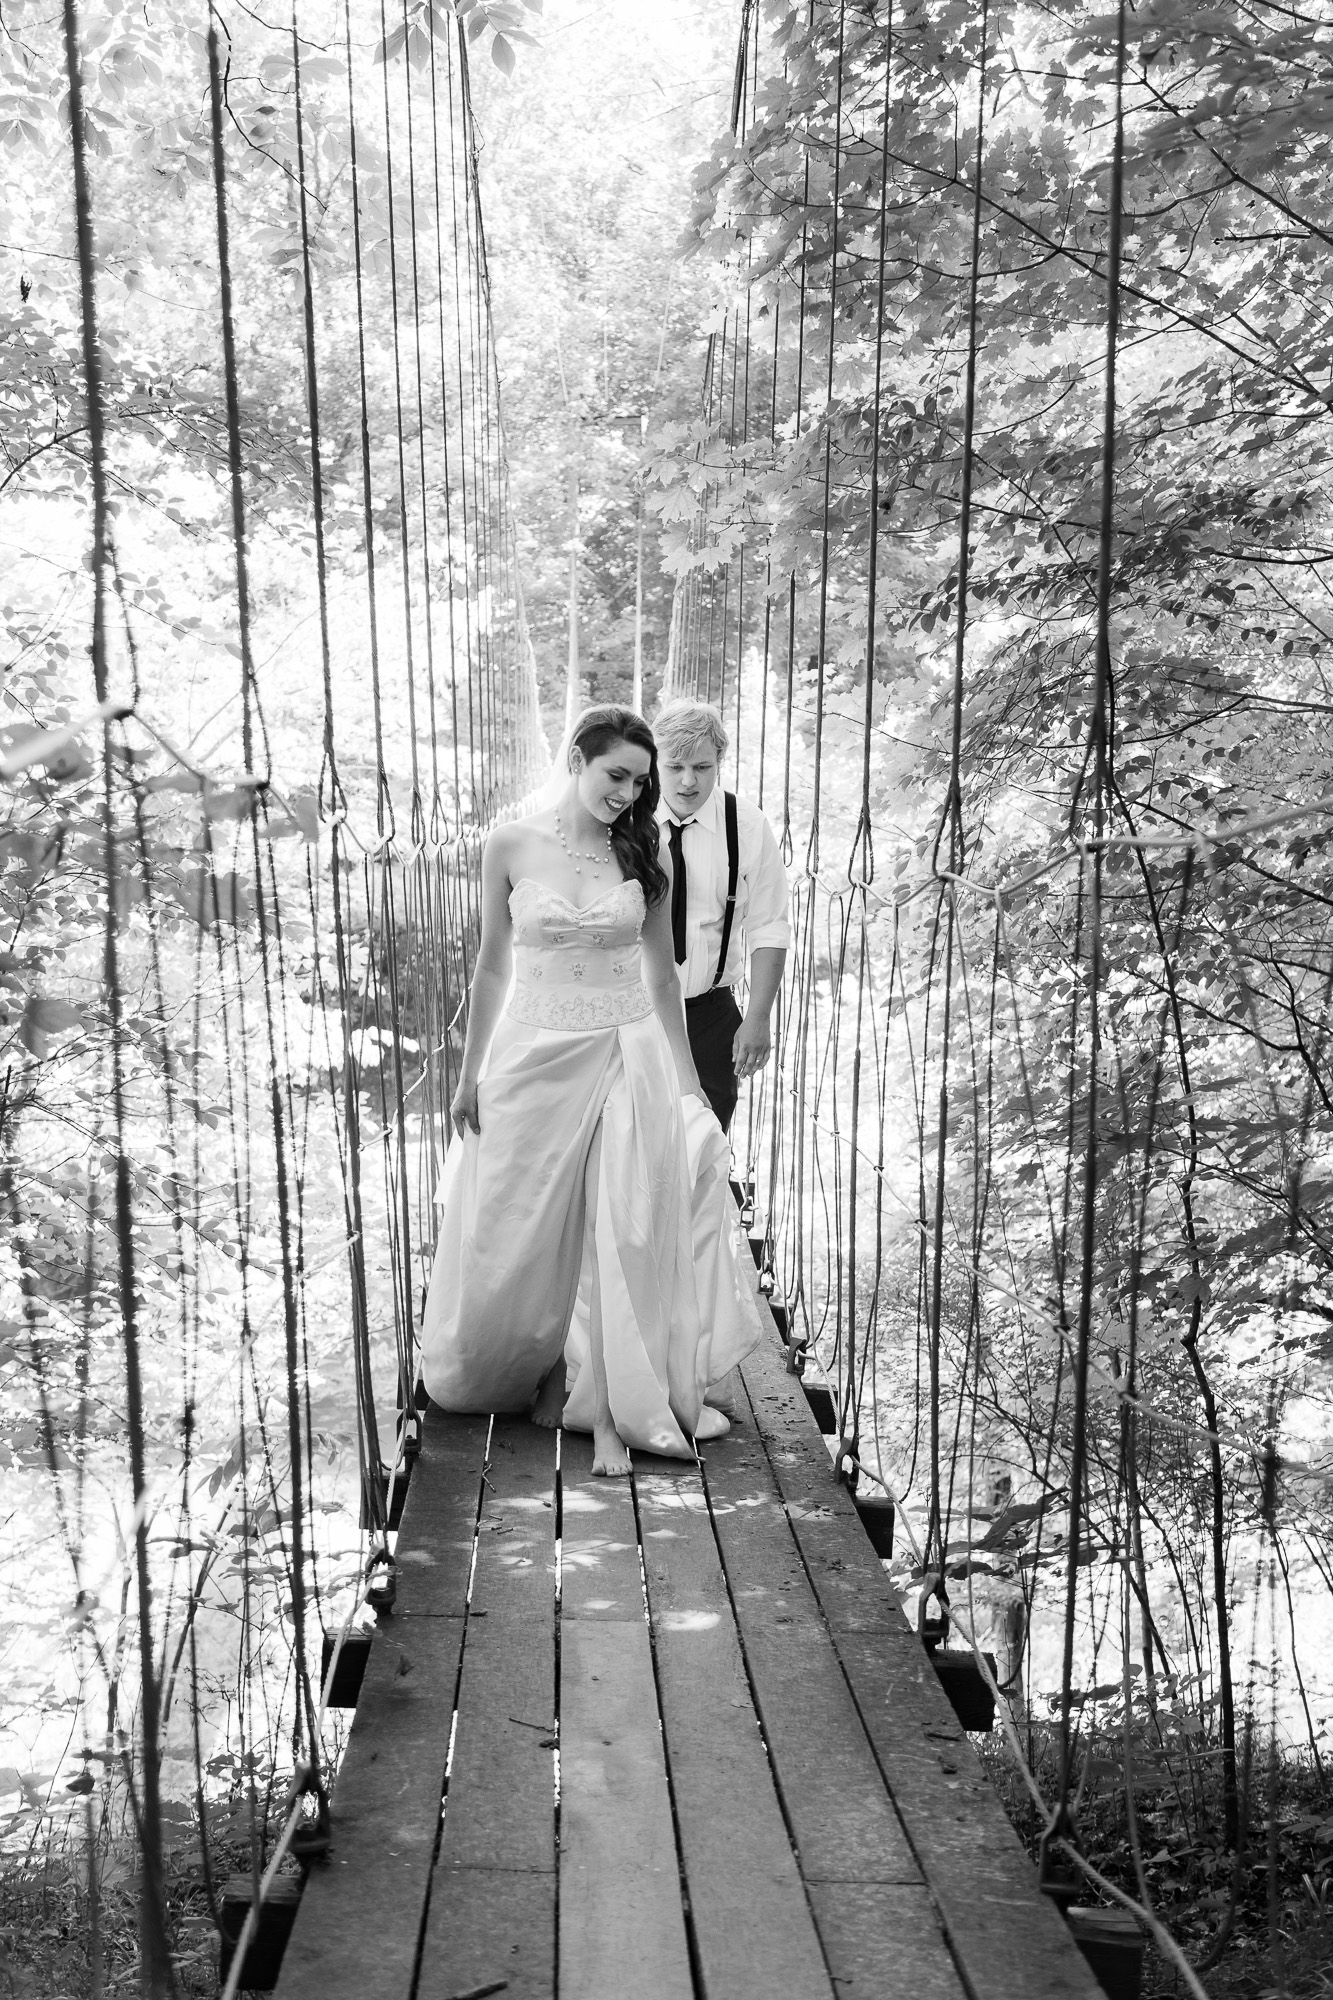 Couple on the Bride in Defiance,Ohio